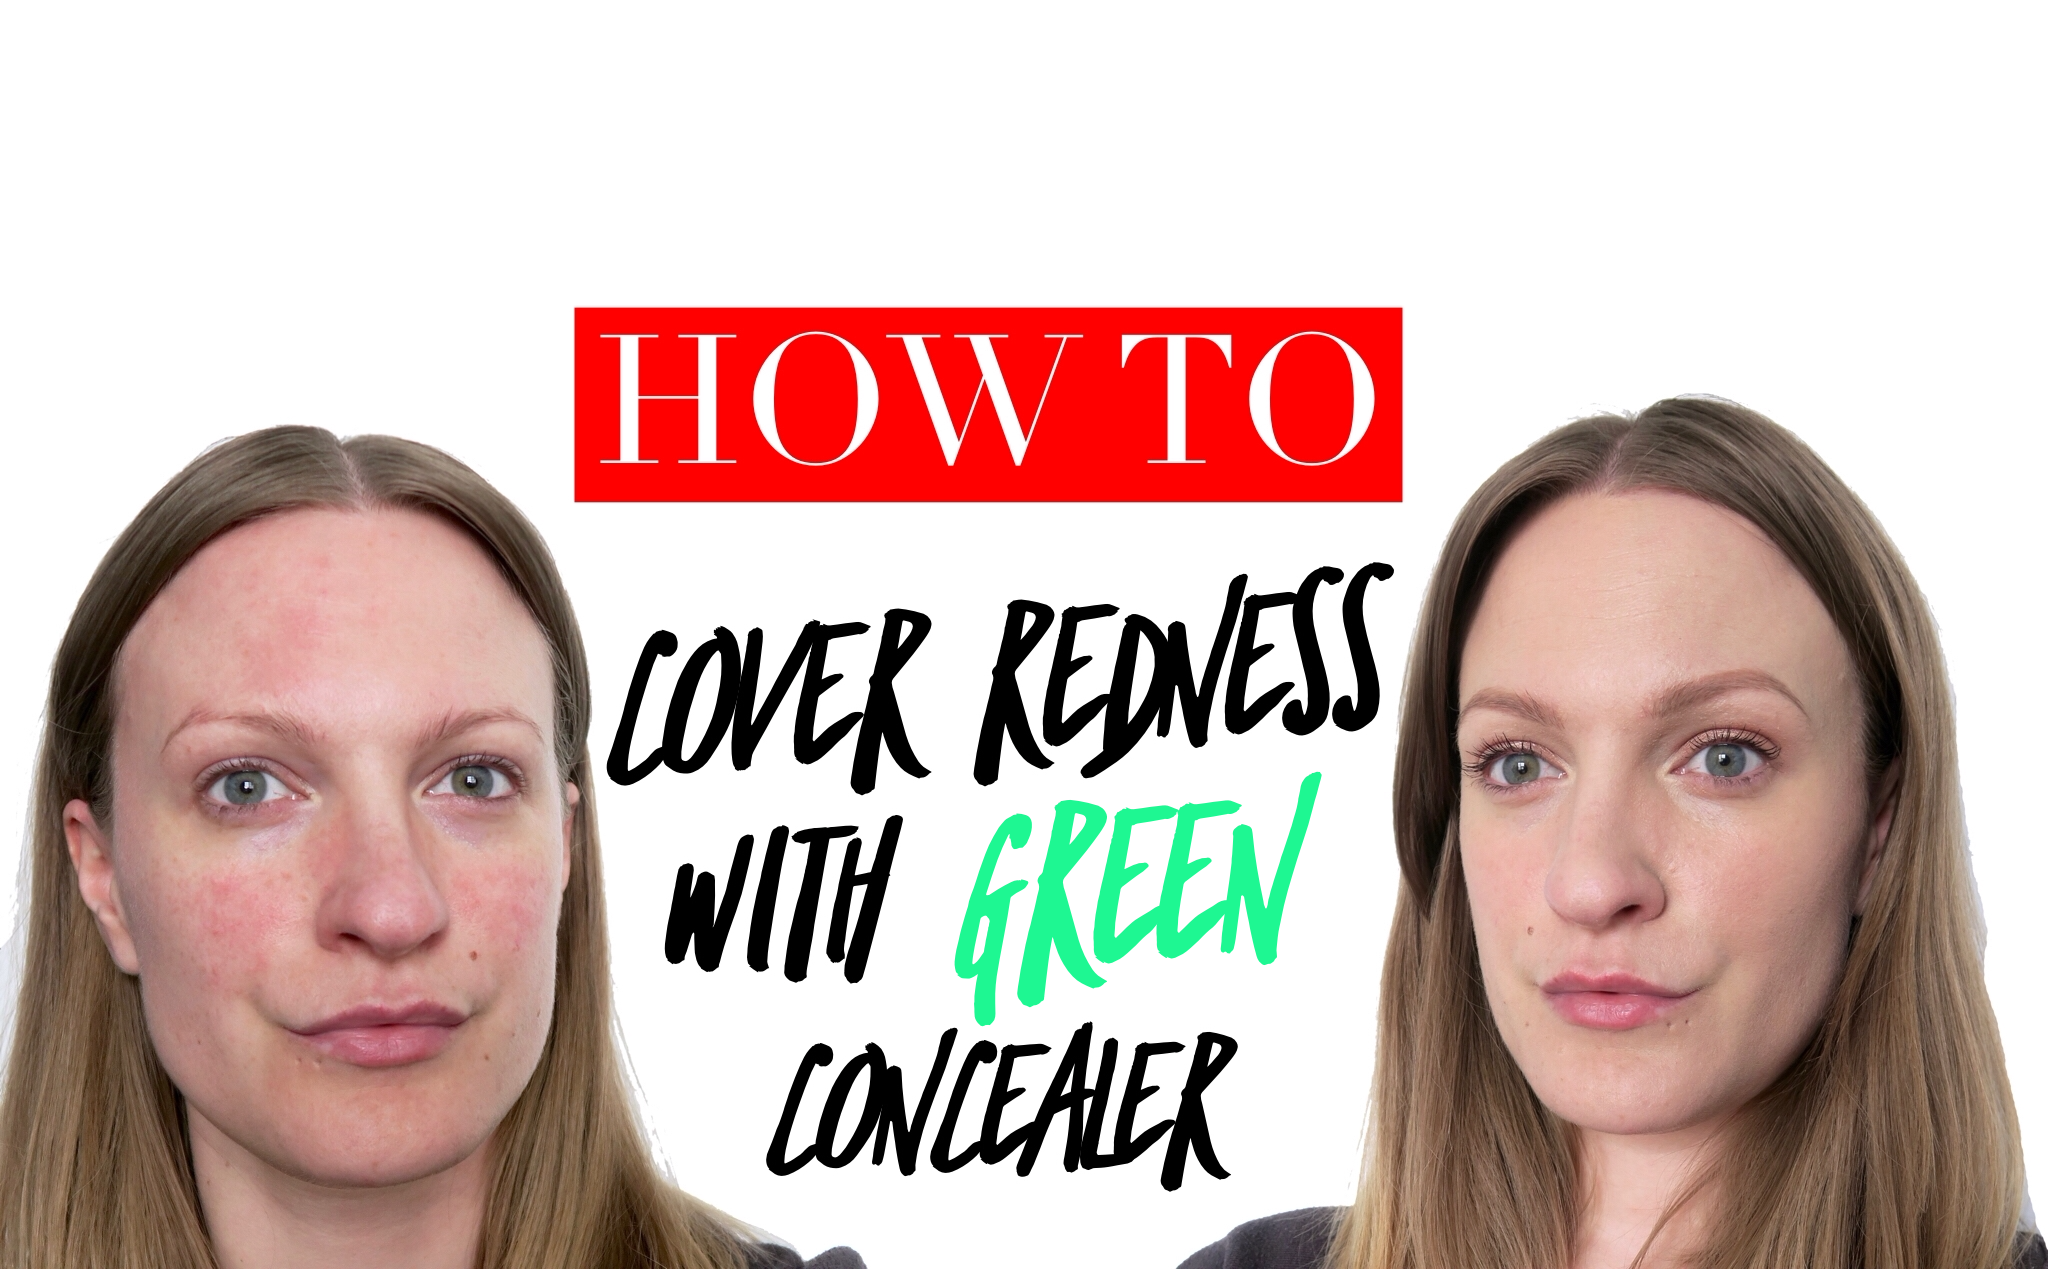 How To Cover Redness With Green Concealer Green